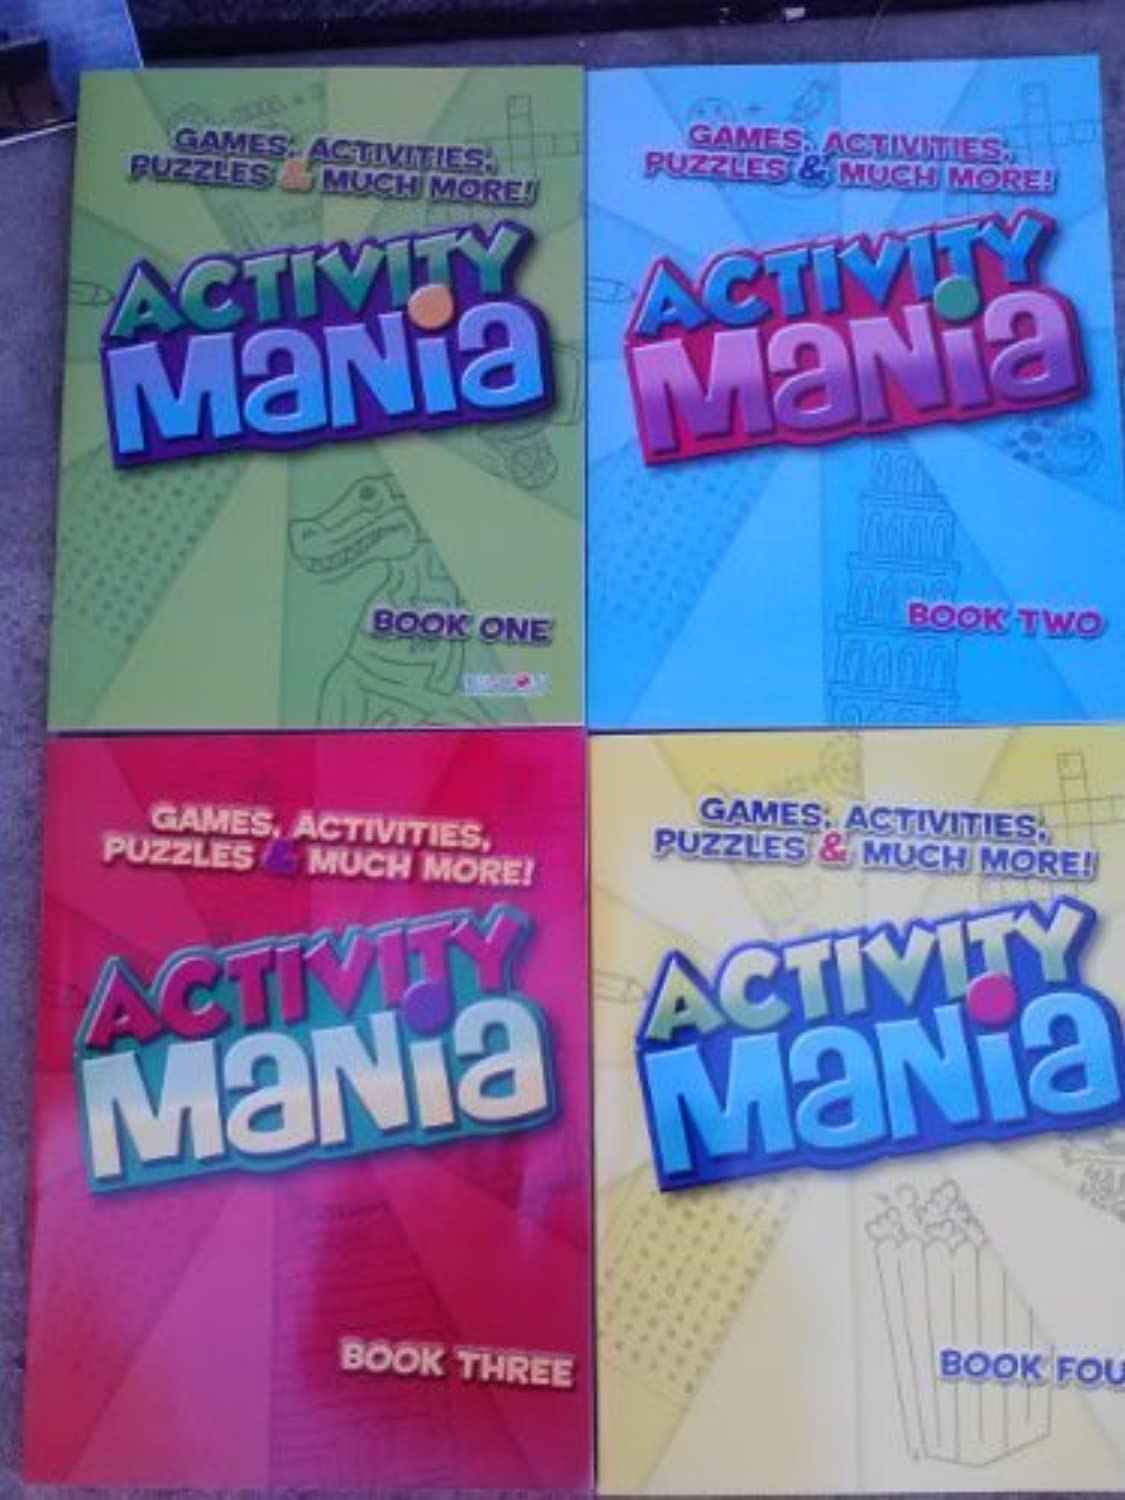 Activity Mania, Games, Activities, Puzzles, & Much More (Assorted, Designs Vary) by Chelsea Davenport [2013] by Bendon